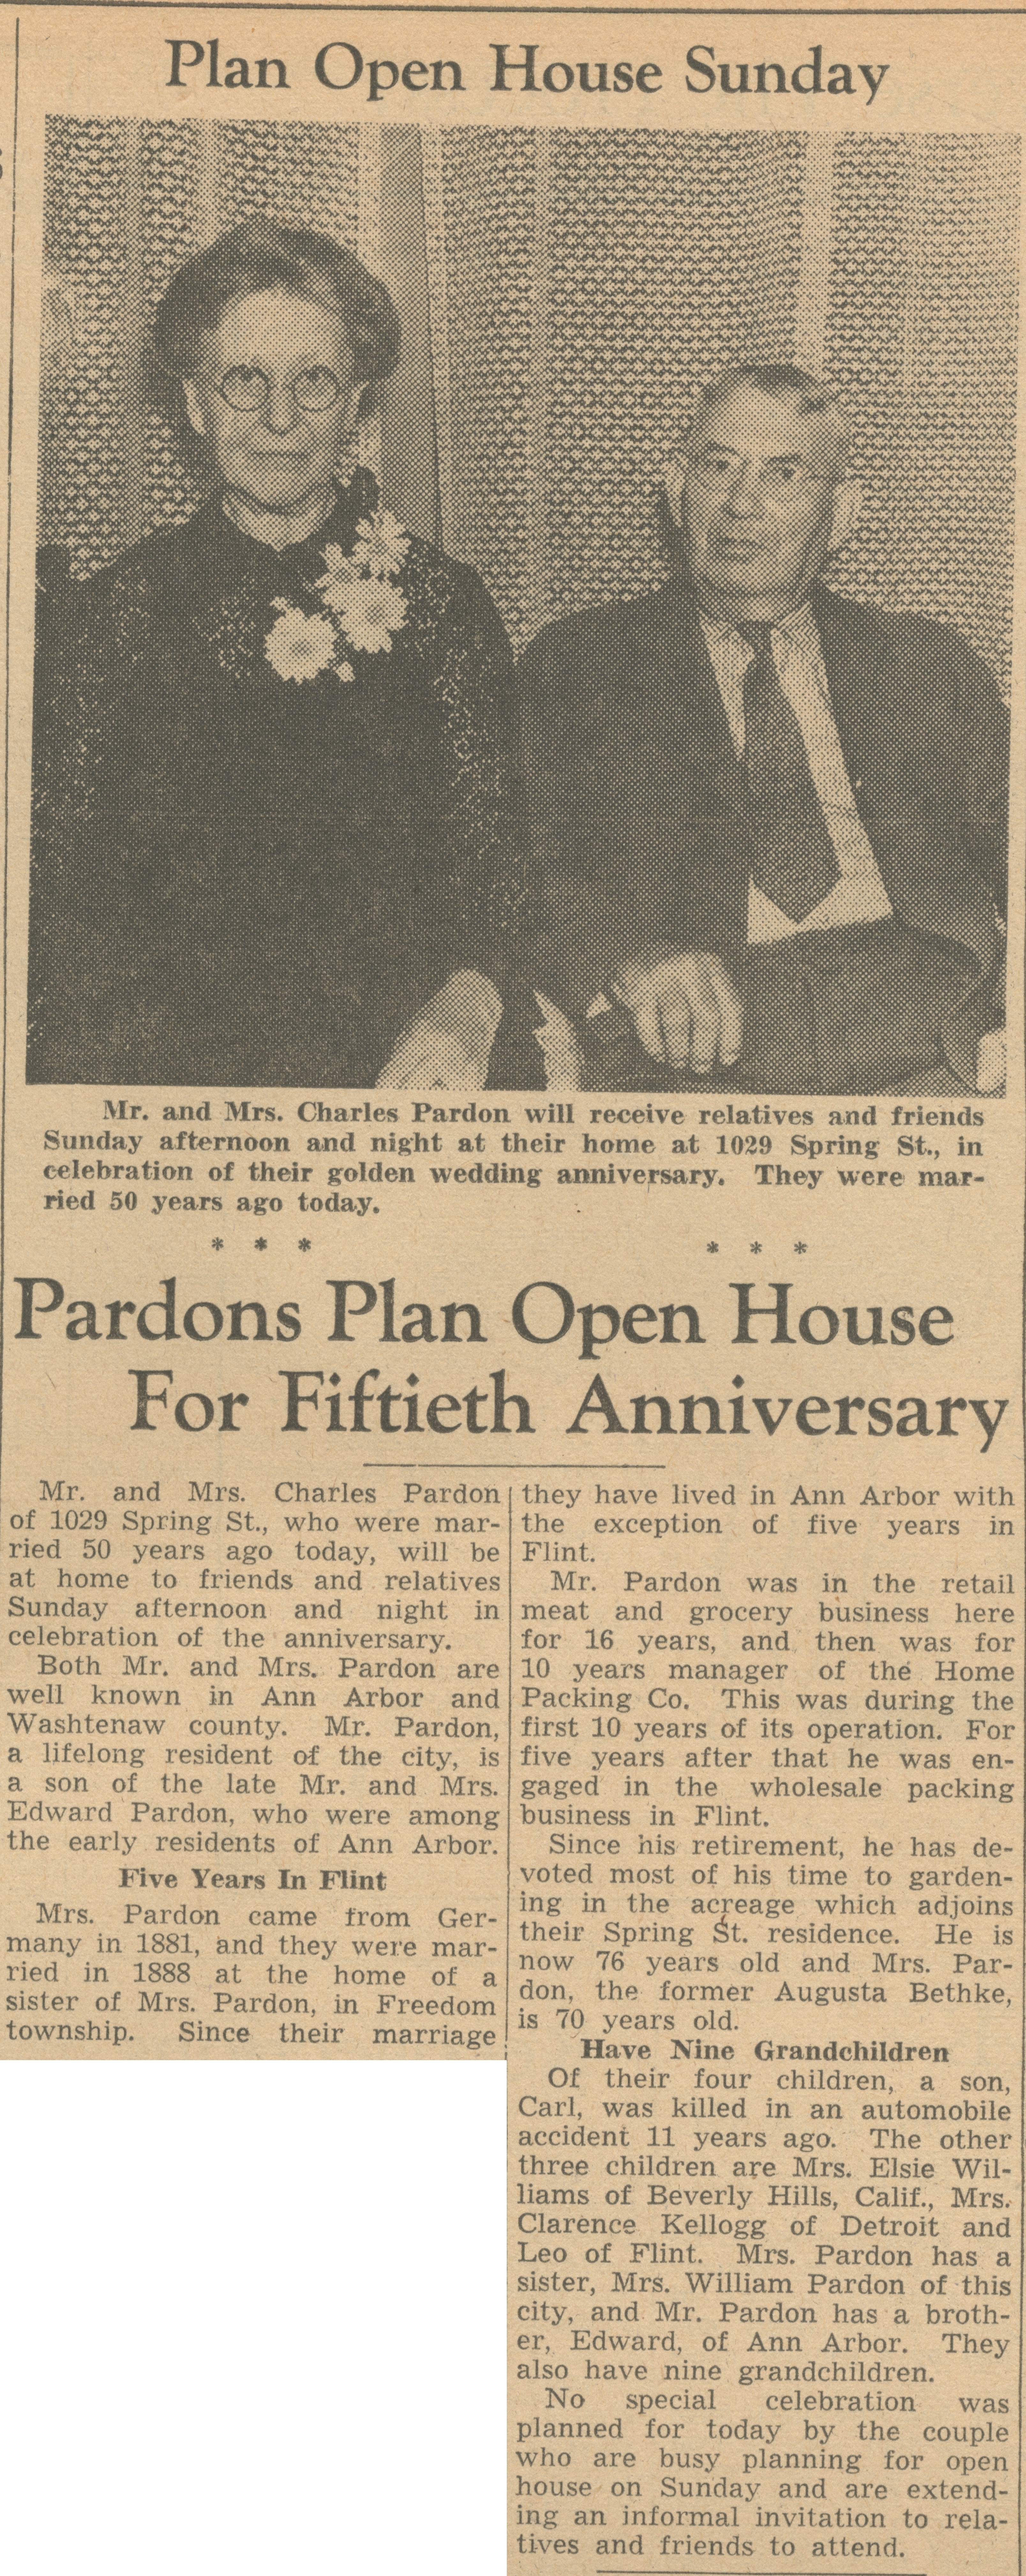 Pardons Plan Open House For Fiftieth Anniversary image